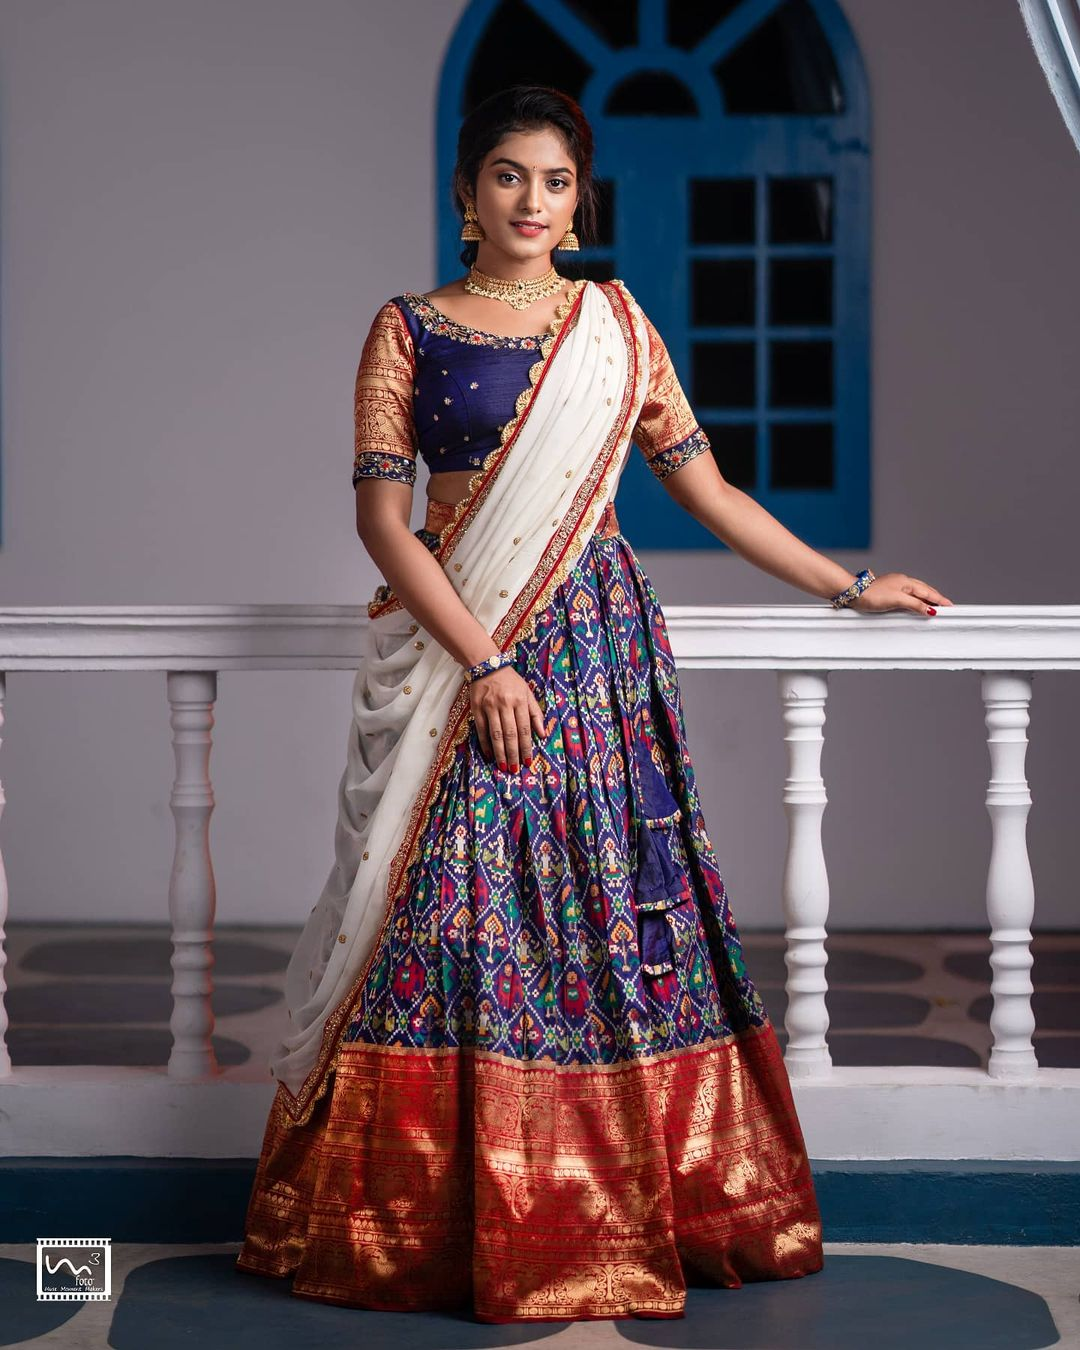 A Classic traditional bridal pattu navyblue lehenga with white dupatta and an intricately handworked blouse. A must have lehenga for the brides this wedding season. It blends perfectly for any bride with any skintone. 2021-10-18